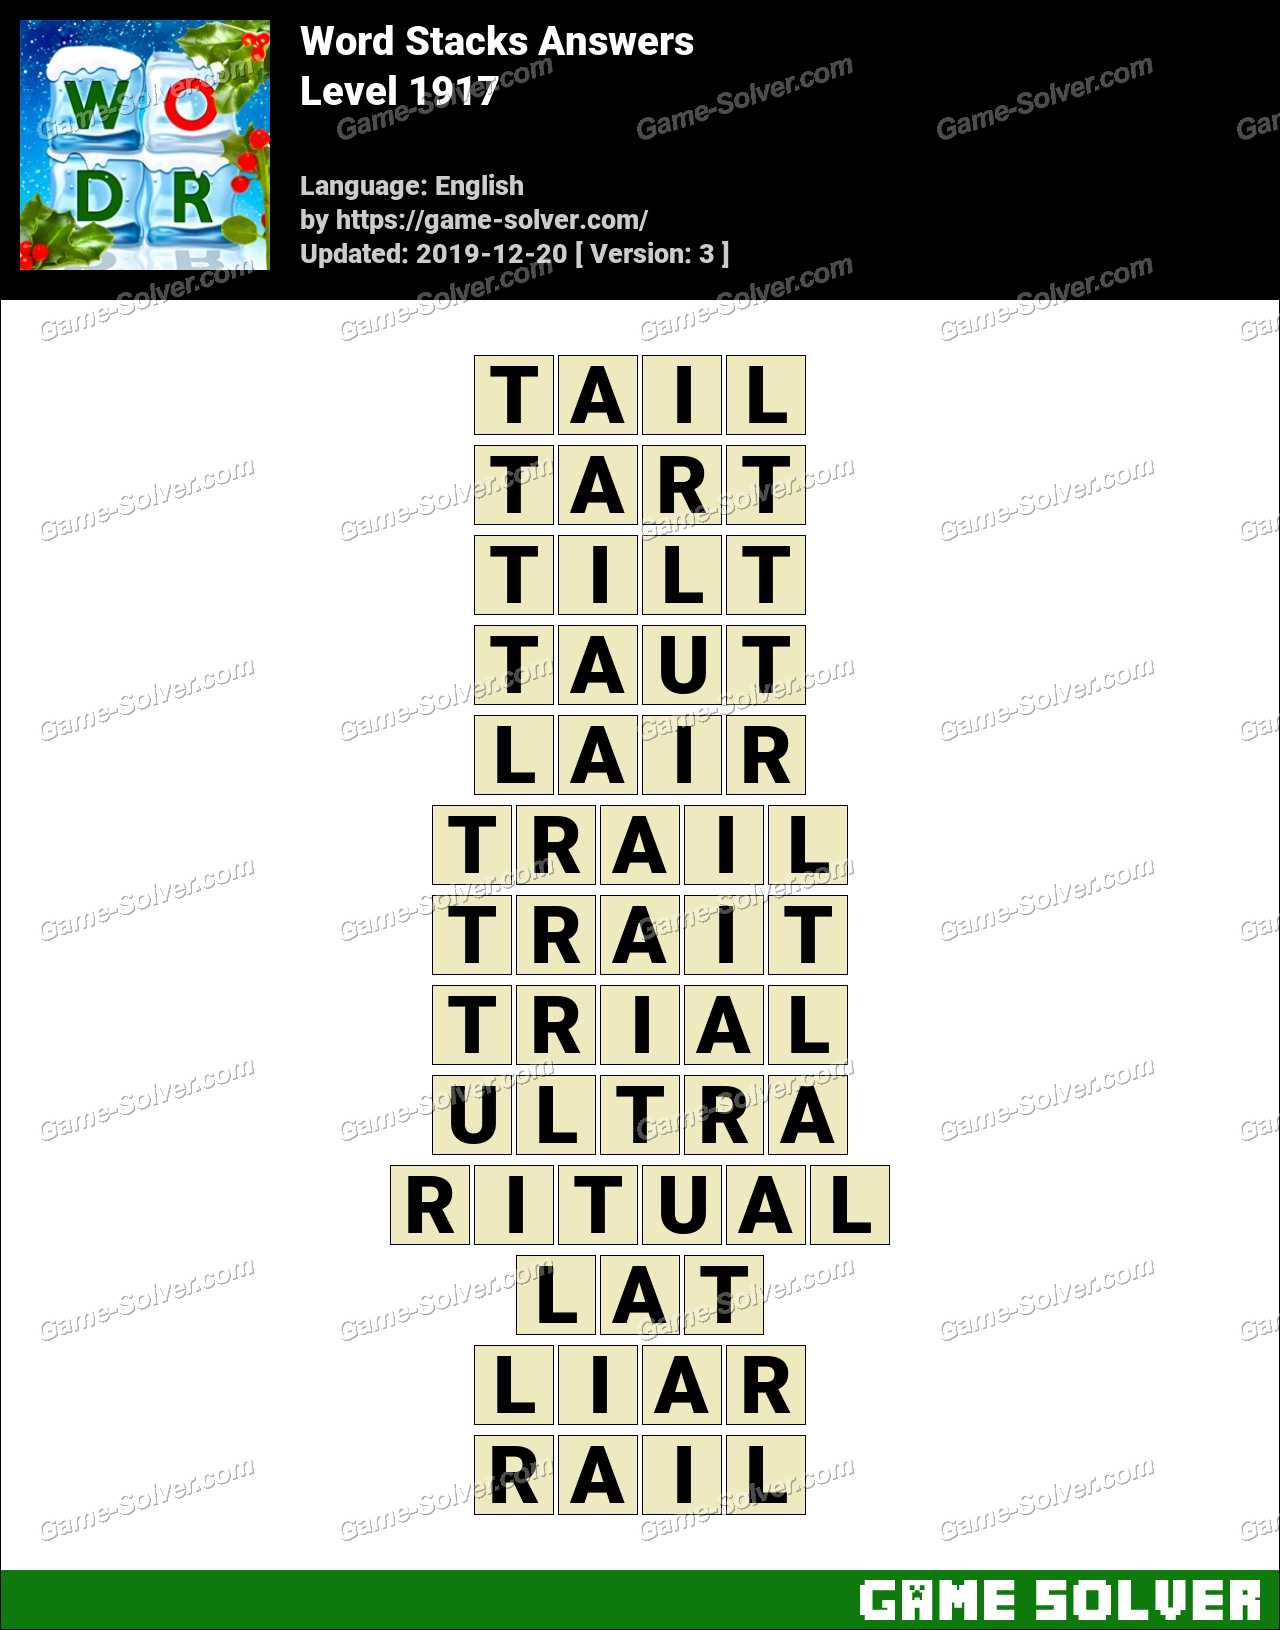 Word Stacks Level 1917 Answers